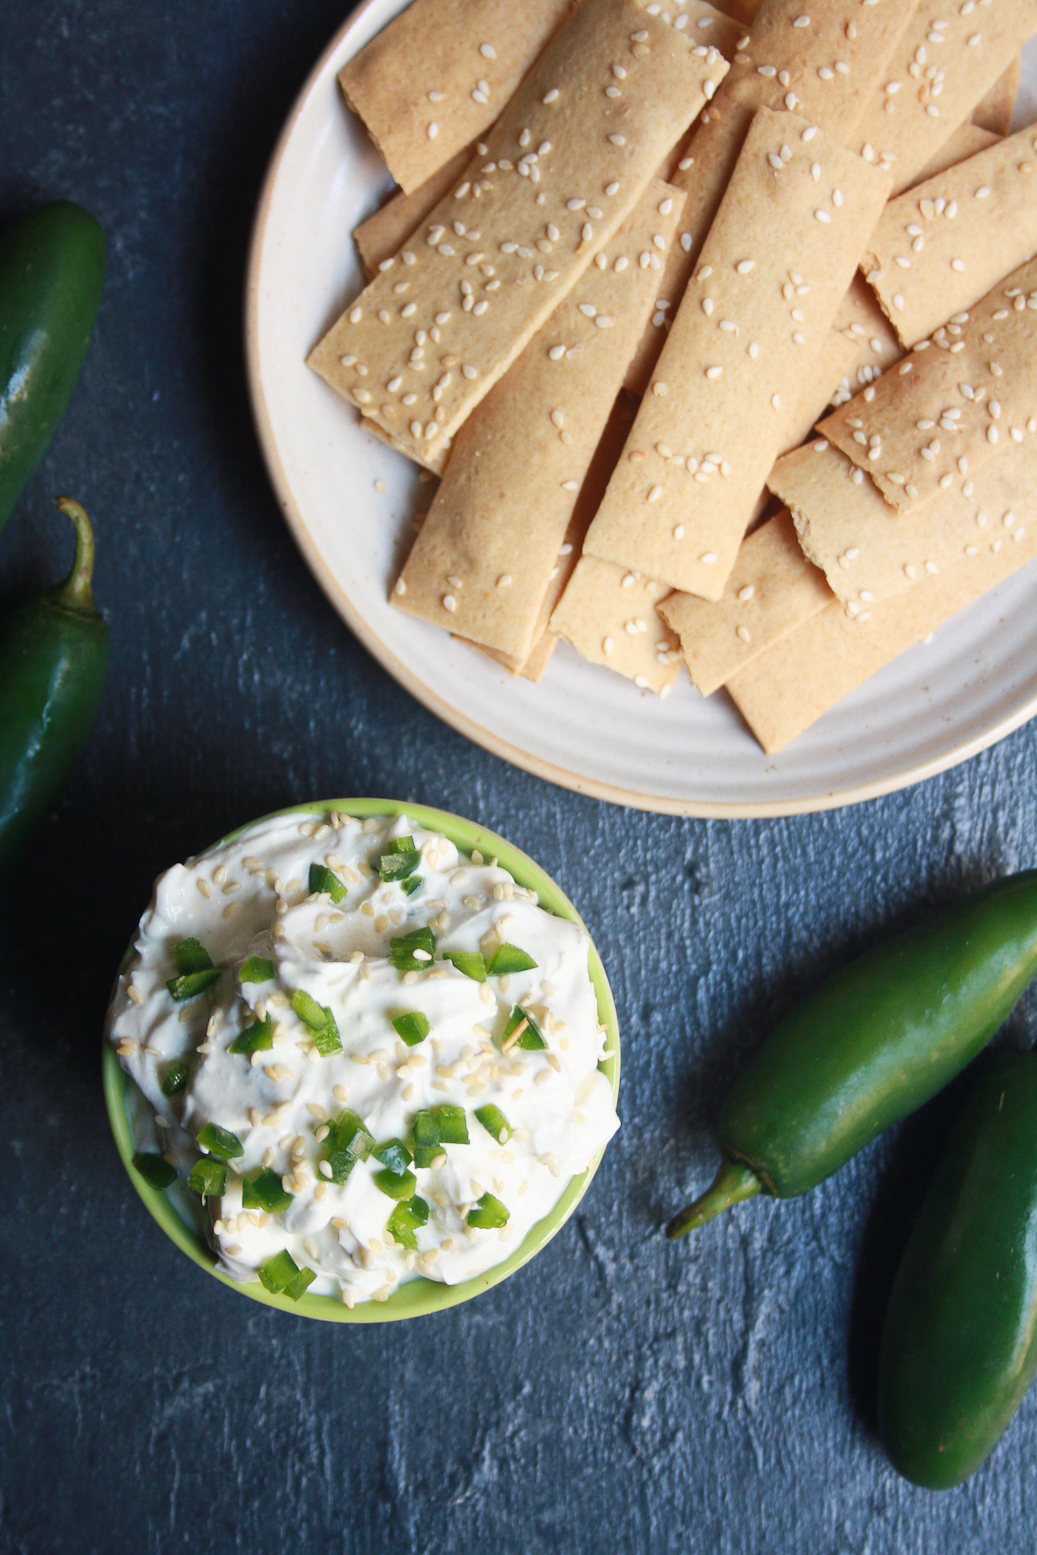 A creamy jalapeno dip made mostly with hung curd and fresh garlic!